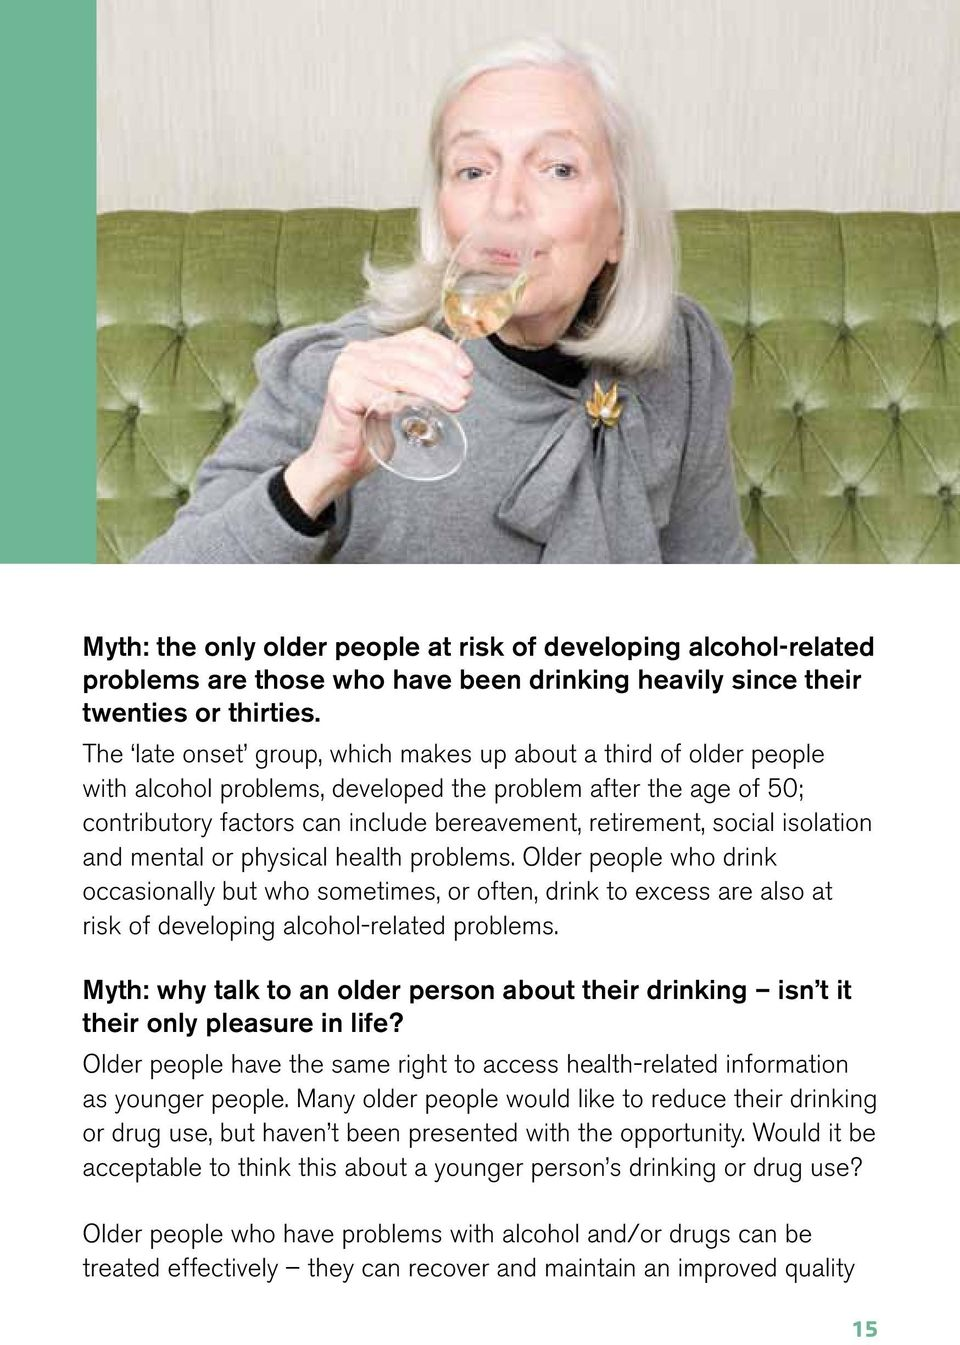 isolation and mental or physical health problems. Older people who drink occasionally but who sometimes, or often, drink to excess are also at risk of developing alcohol-related problems.